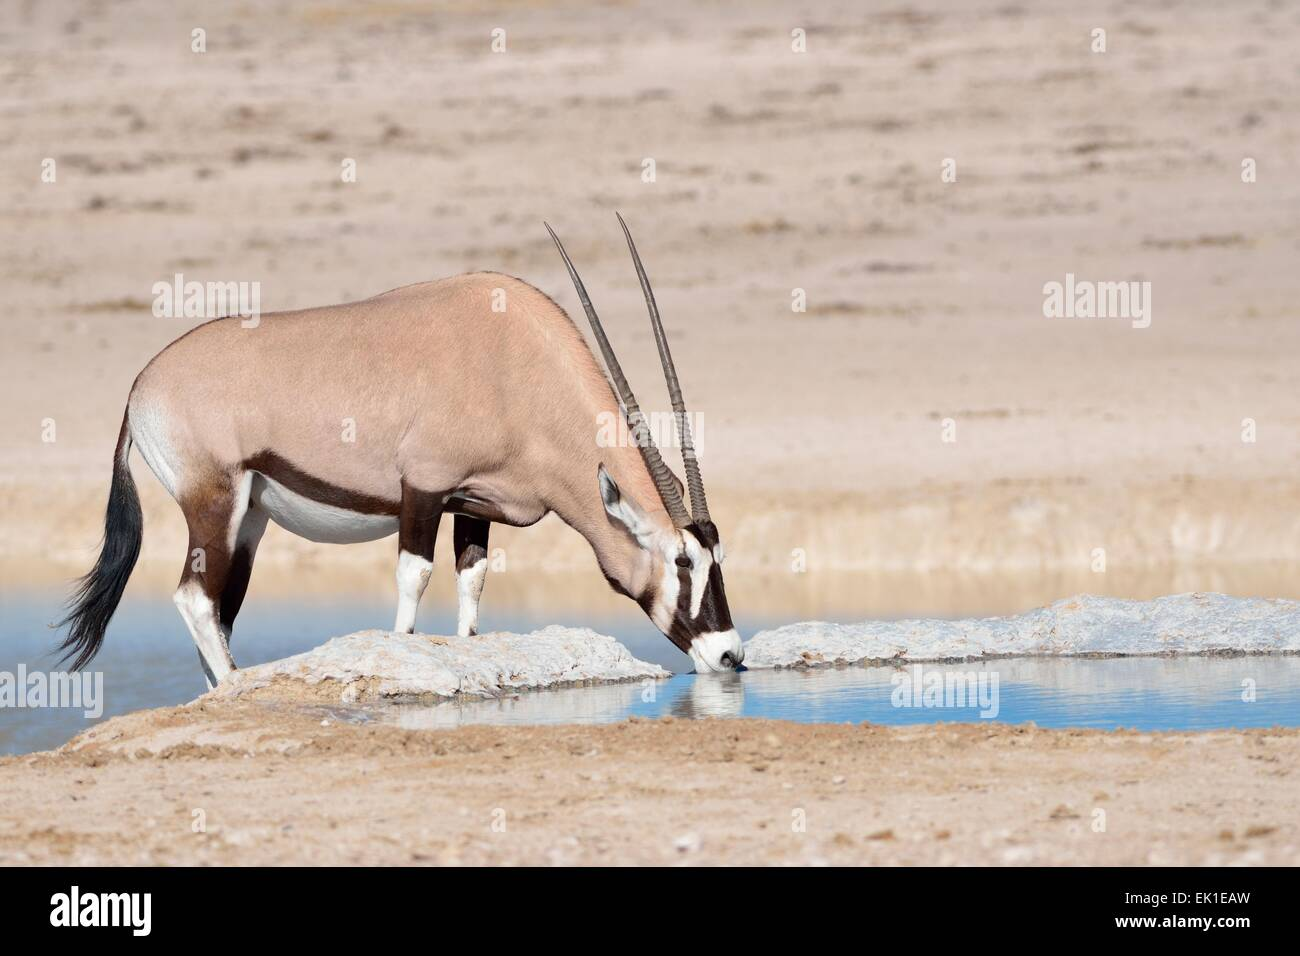 Gemsbok (Oryx gazella), femelle adulte de boire à un point d'Etosha National Park, Namibie, Afrique Photo Stock